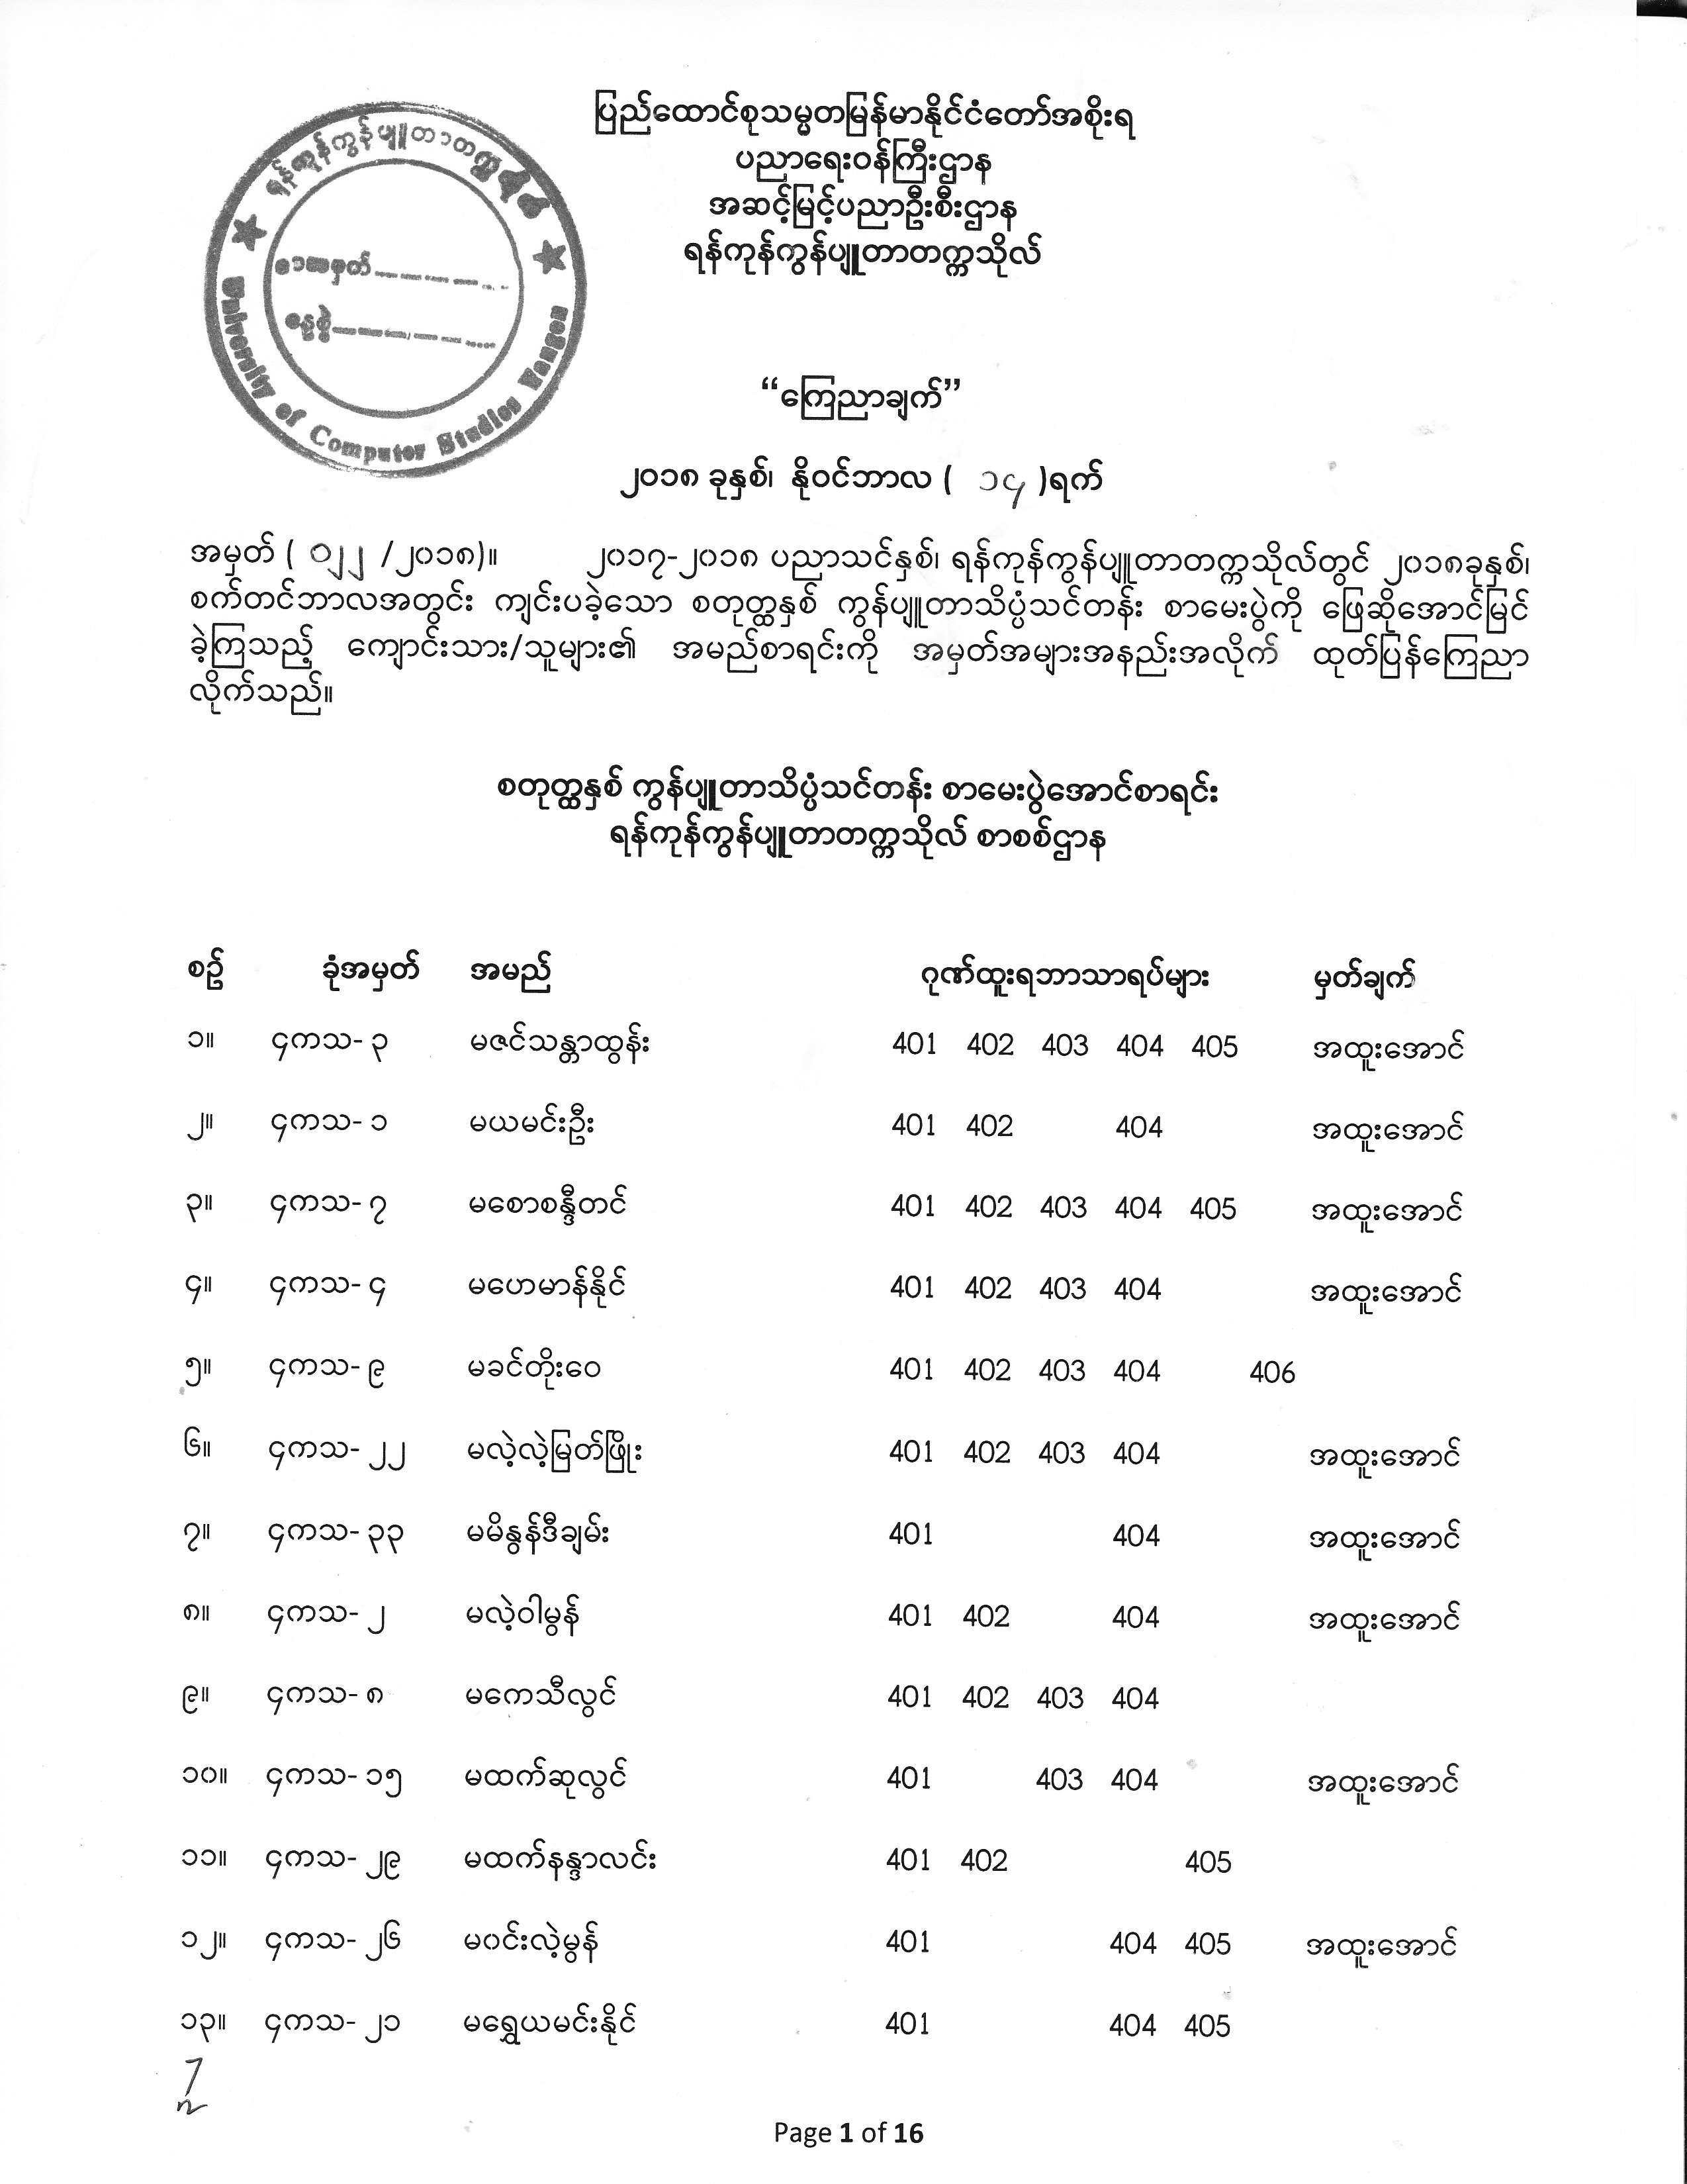 Fourth Year Exam Result